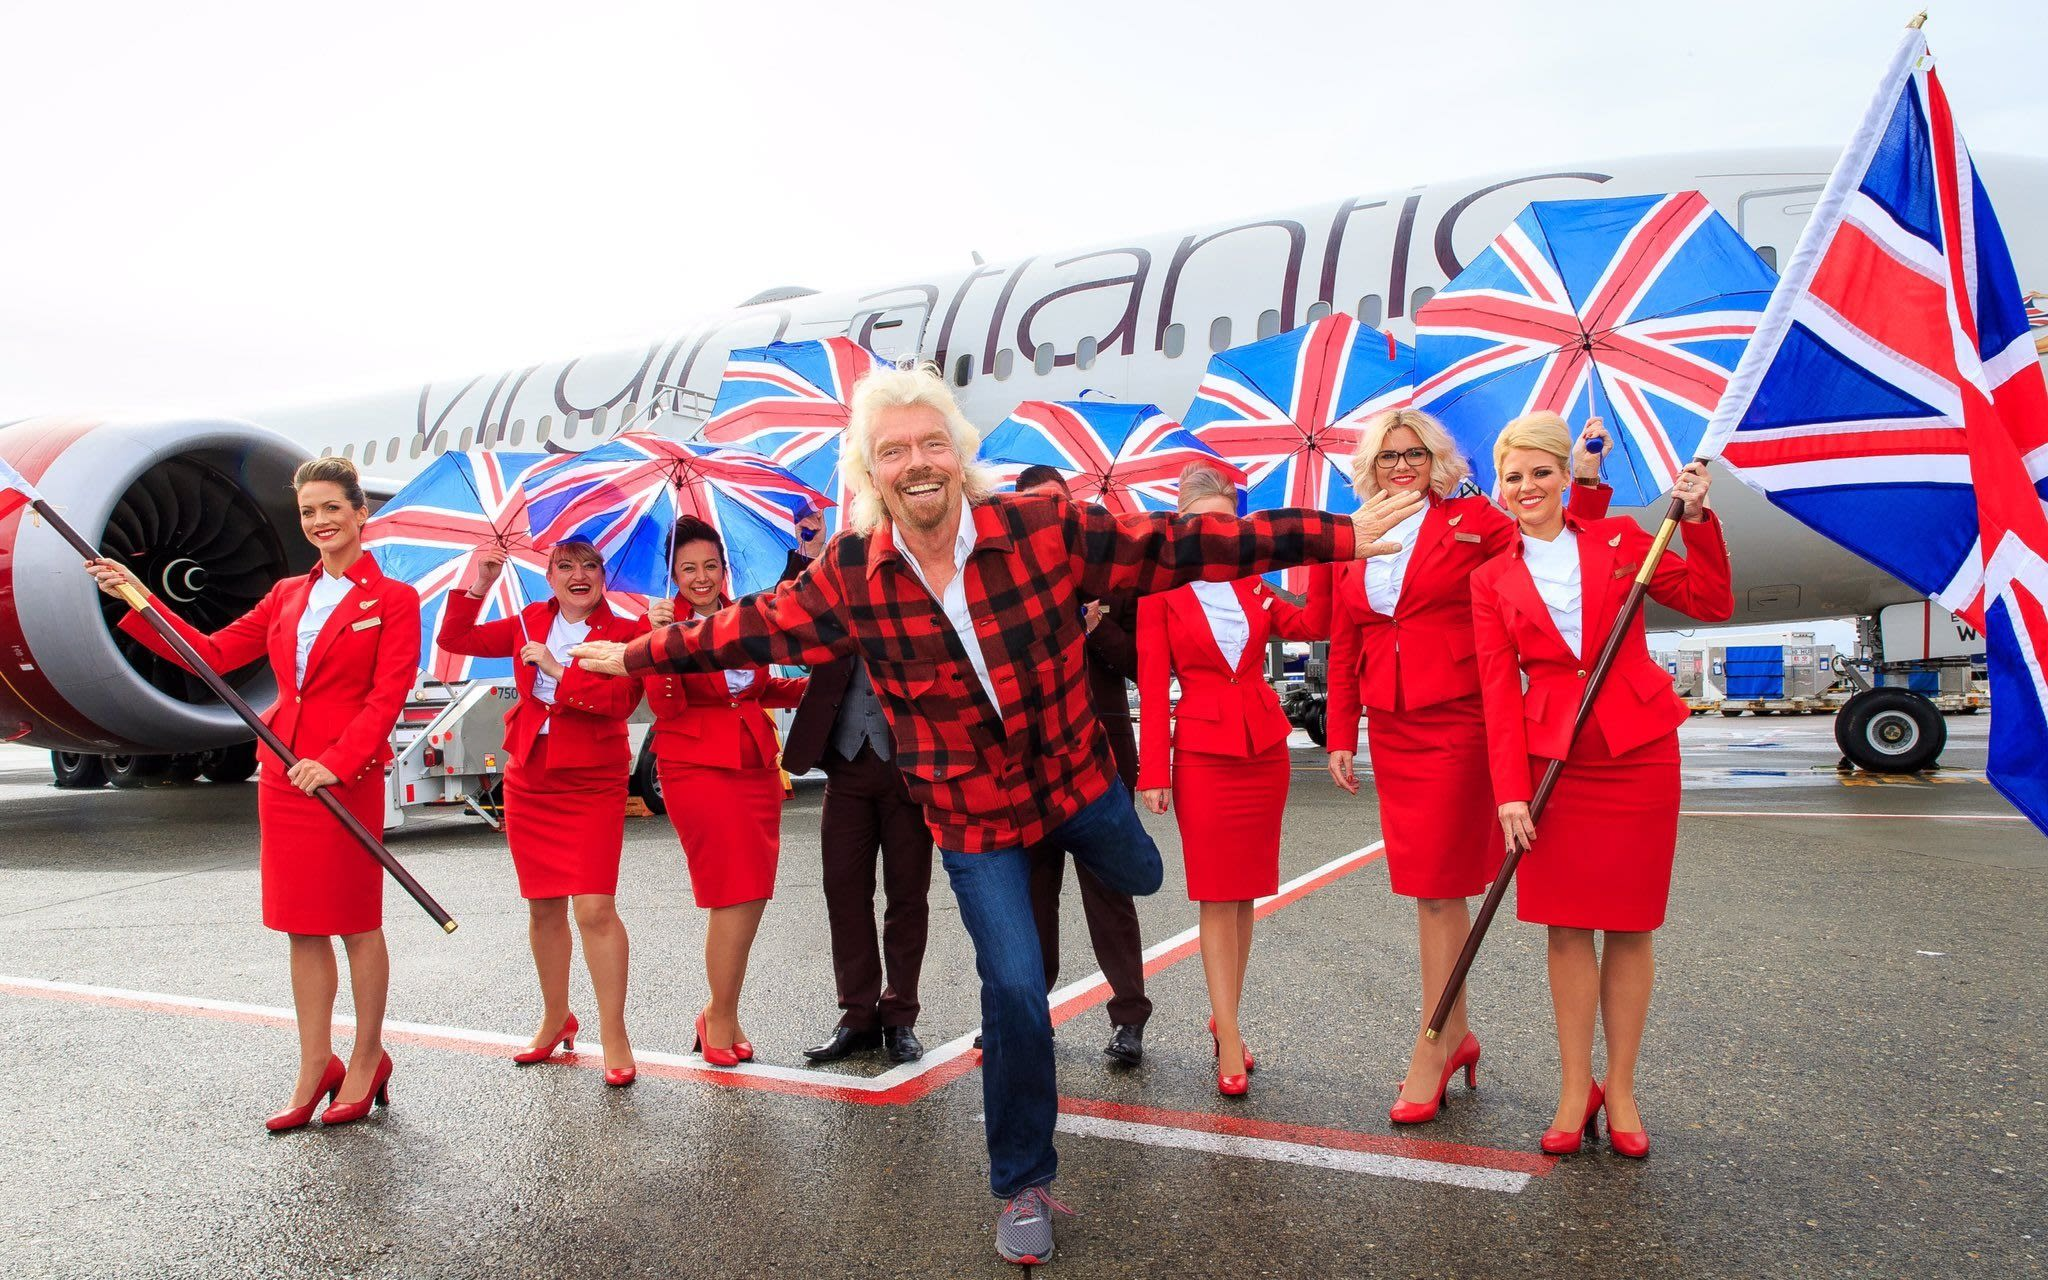 Richard Branson stands in front of Virgin Atlantic cabin crew holding union jack flags and umbrellas